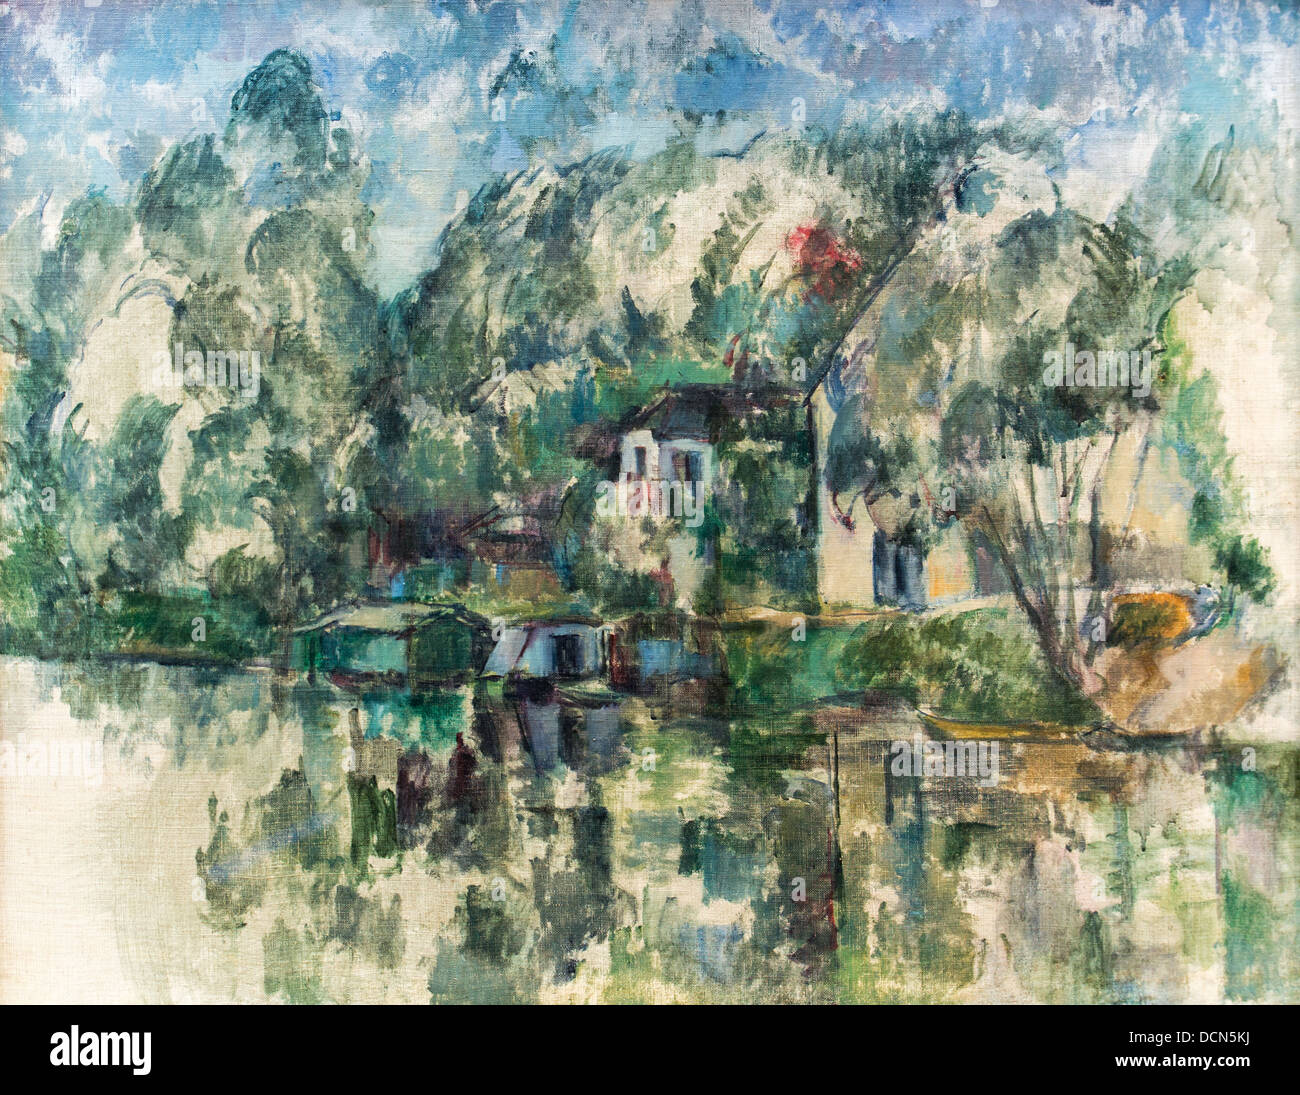 19th century  -  At the water's edge - Paul Cézanne (1890) Philippe Sauvan-Magnet / Active Museum - Stock Image